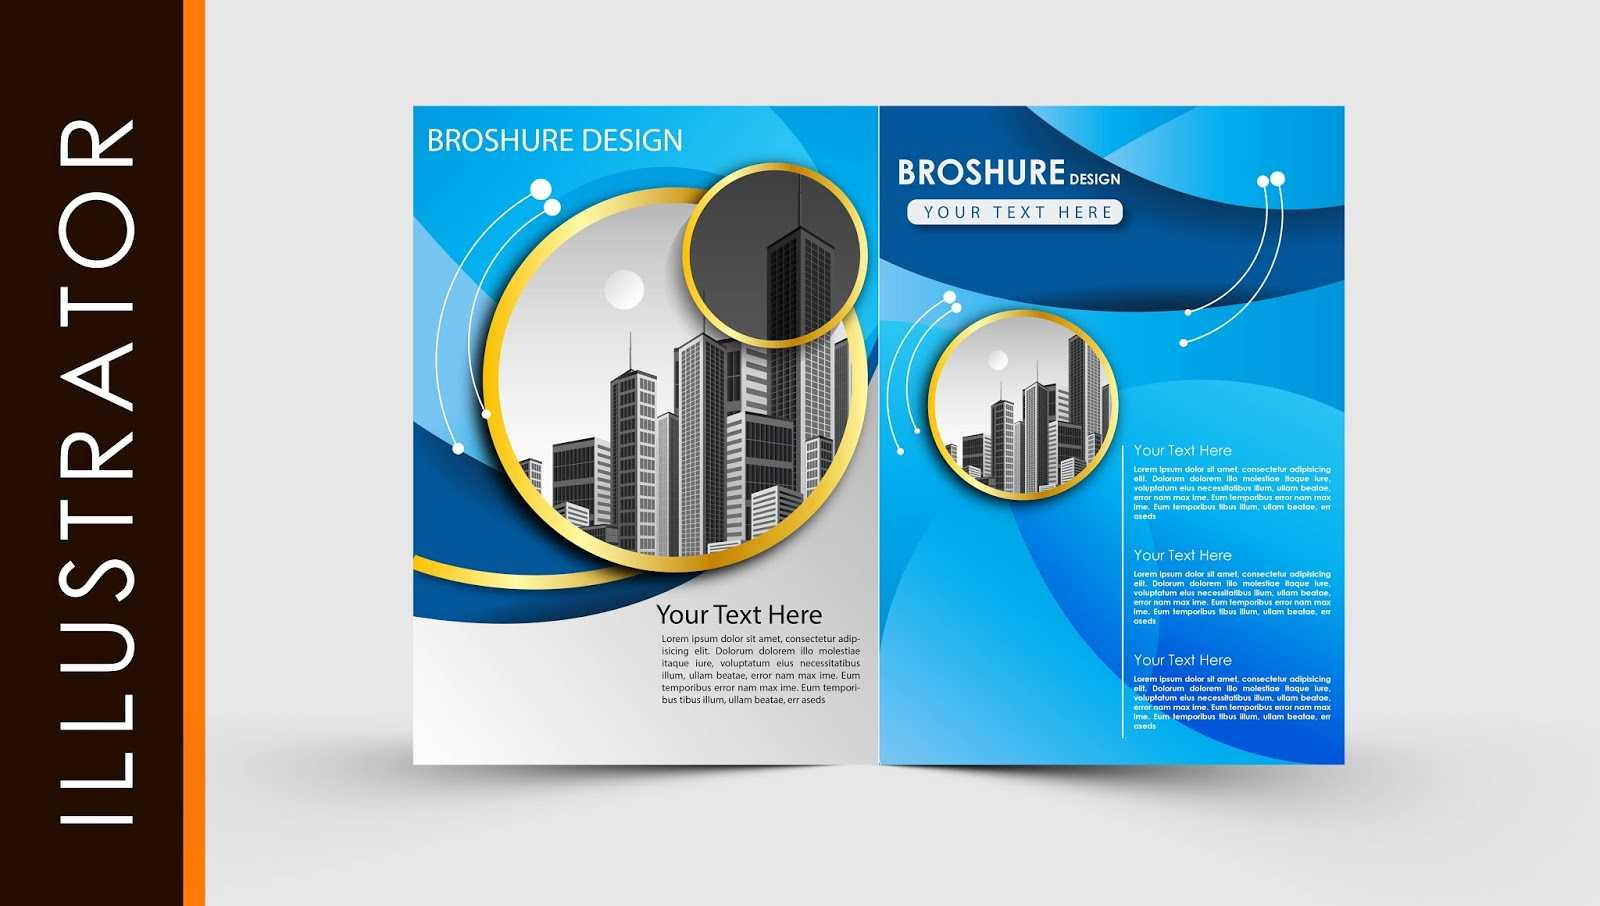 023 Brochure Templates Free Download For Photoshop Template Intended For Adobe Illustrator Brochure Templates Free Download